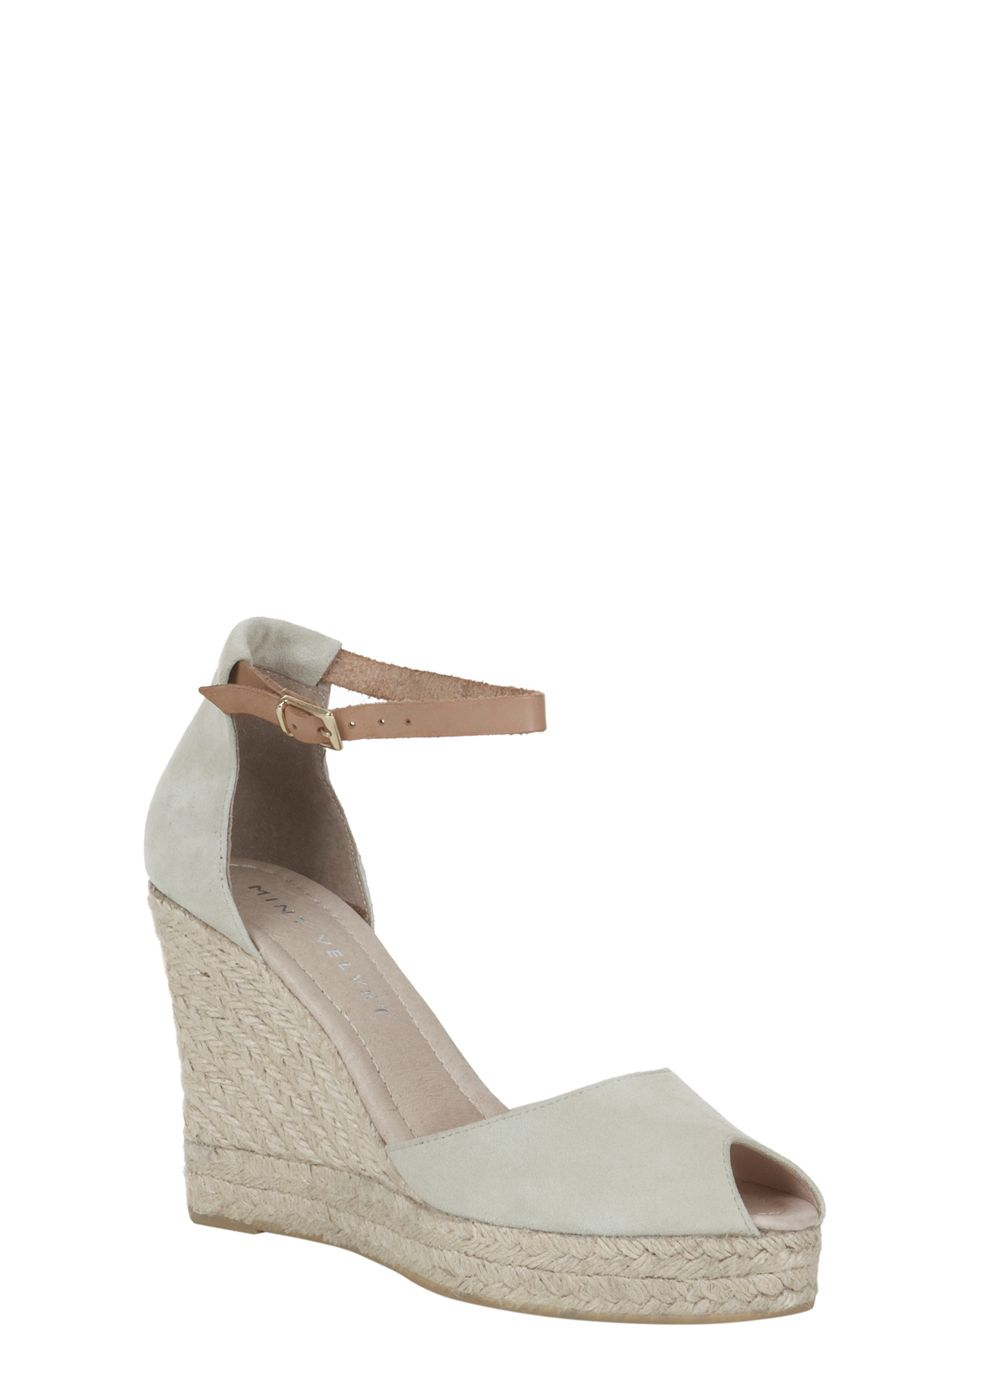 Cream & tan bryony wedge